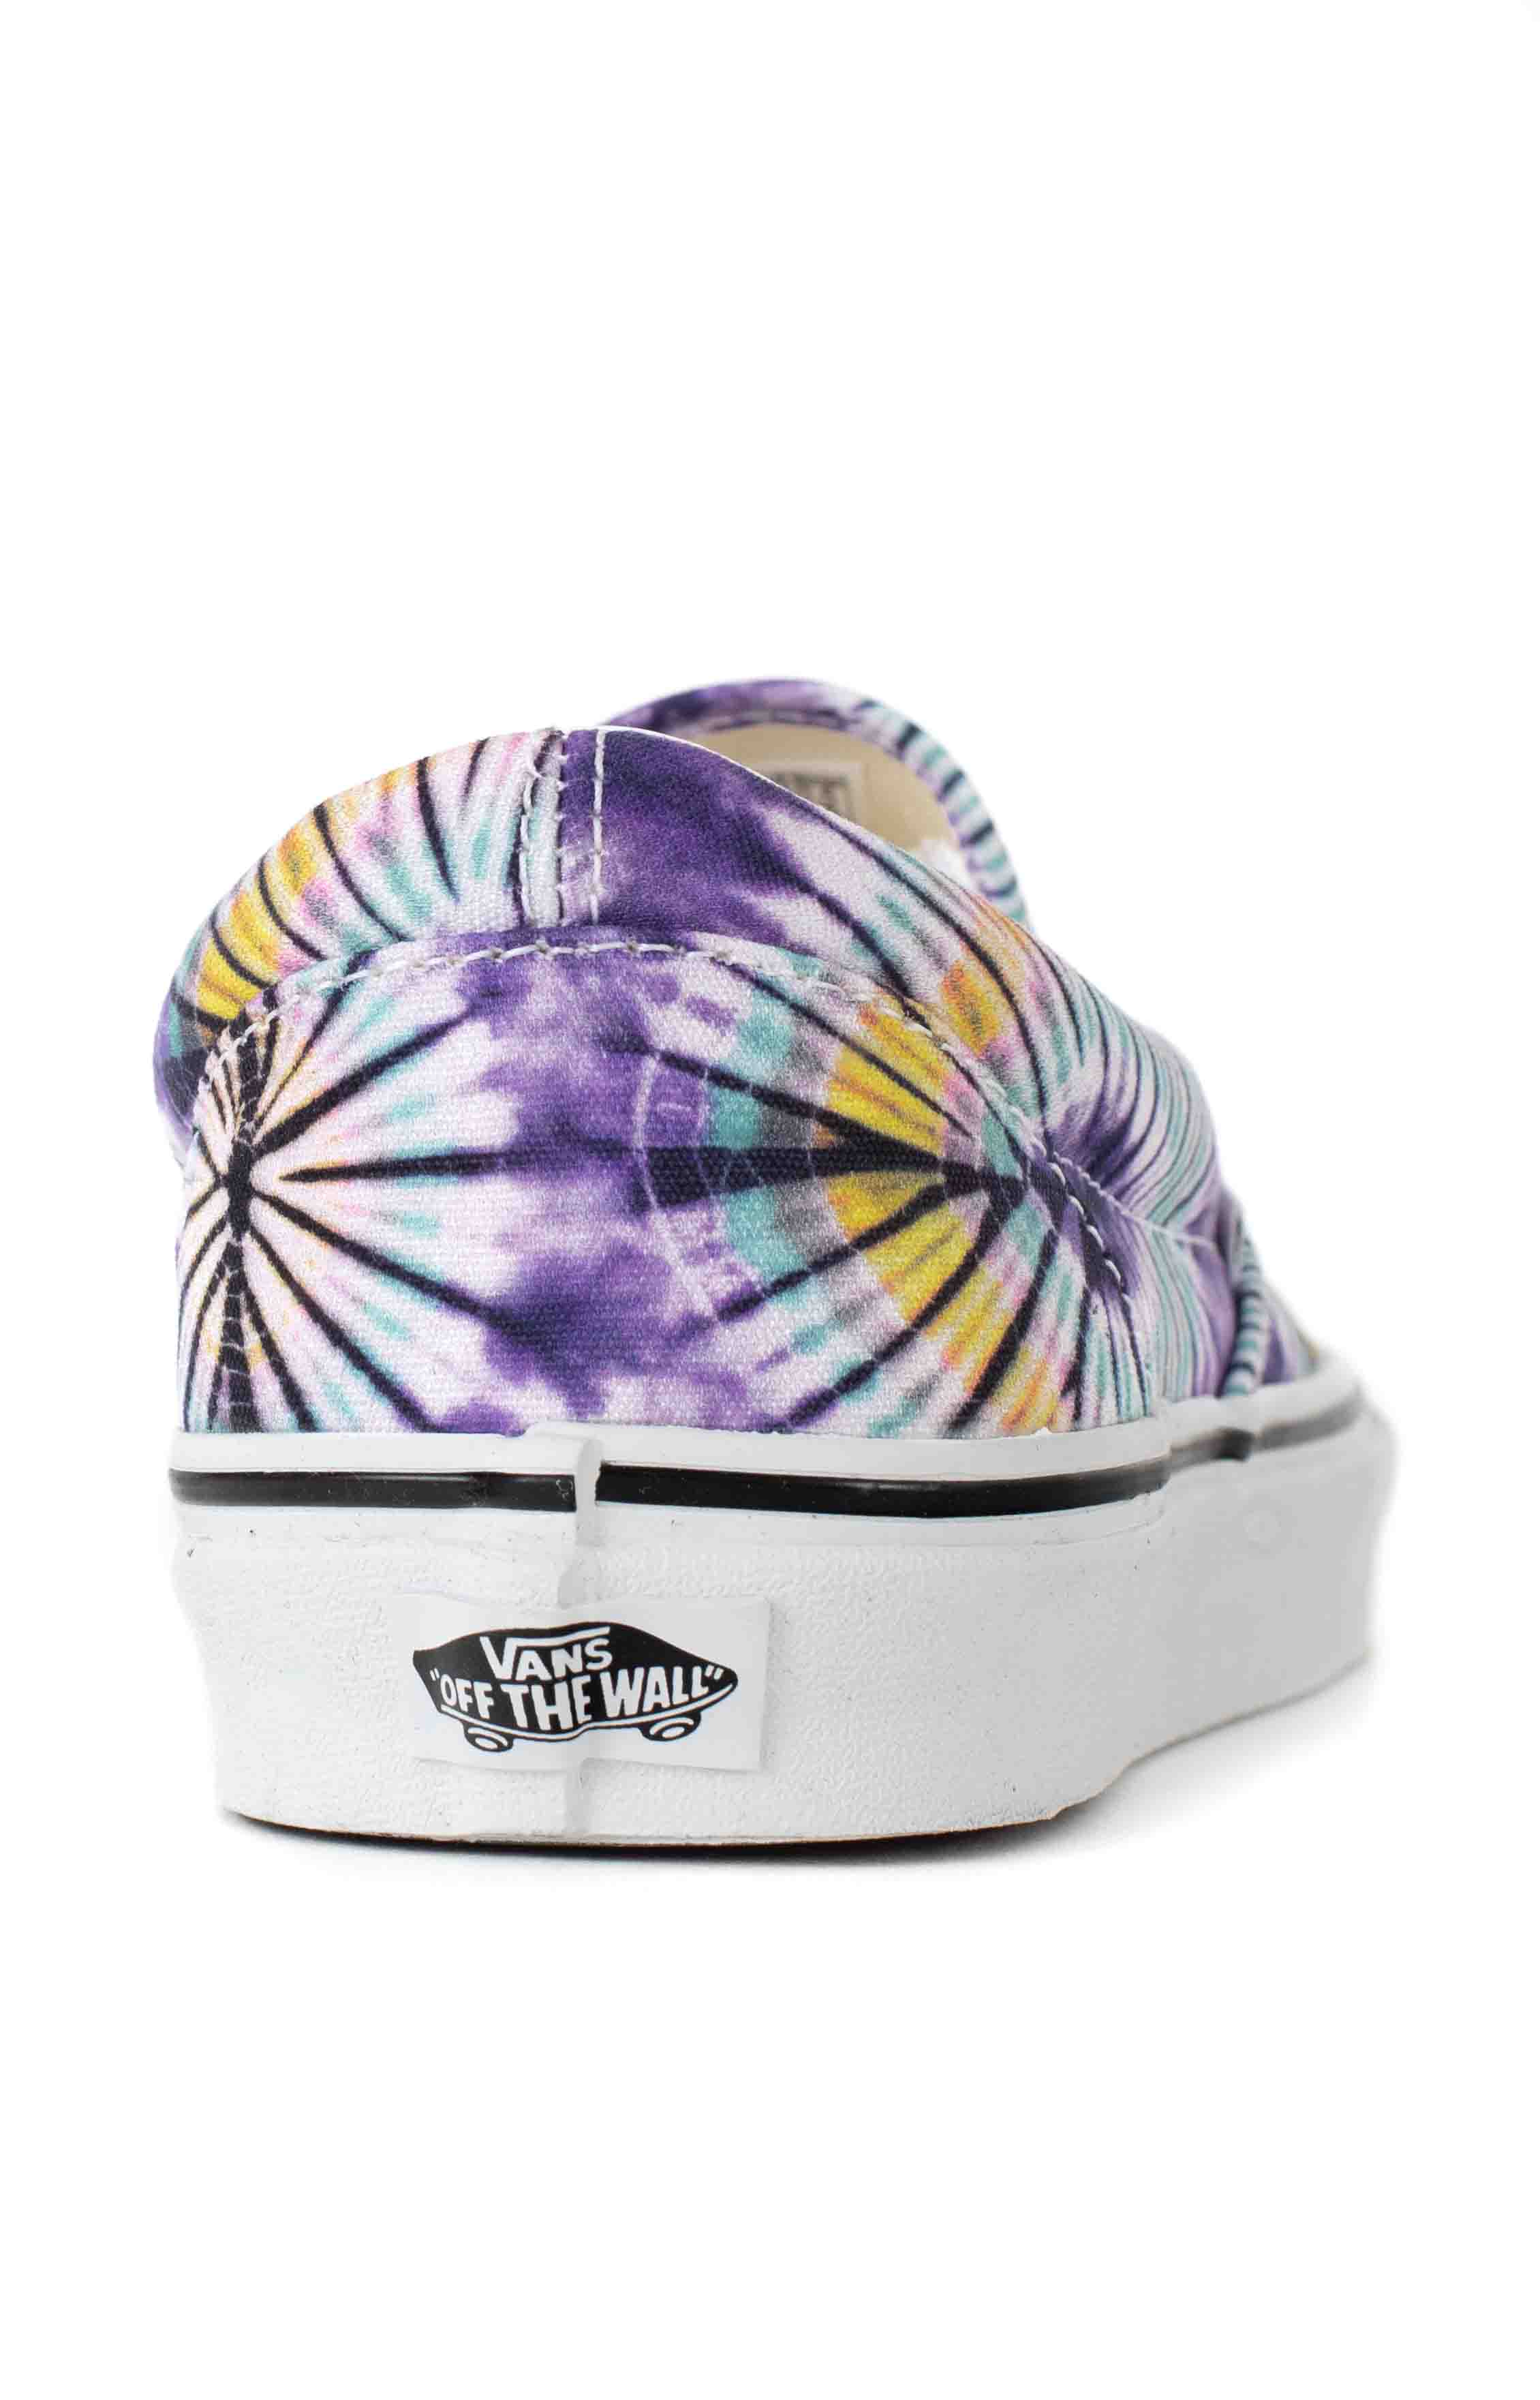 (AO86G6) New Age Classic Slip-On Shoes - Purple Tie-Dye  5